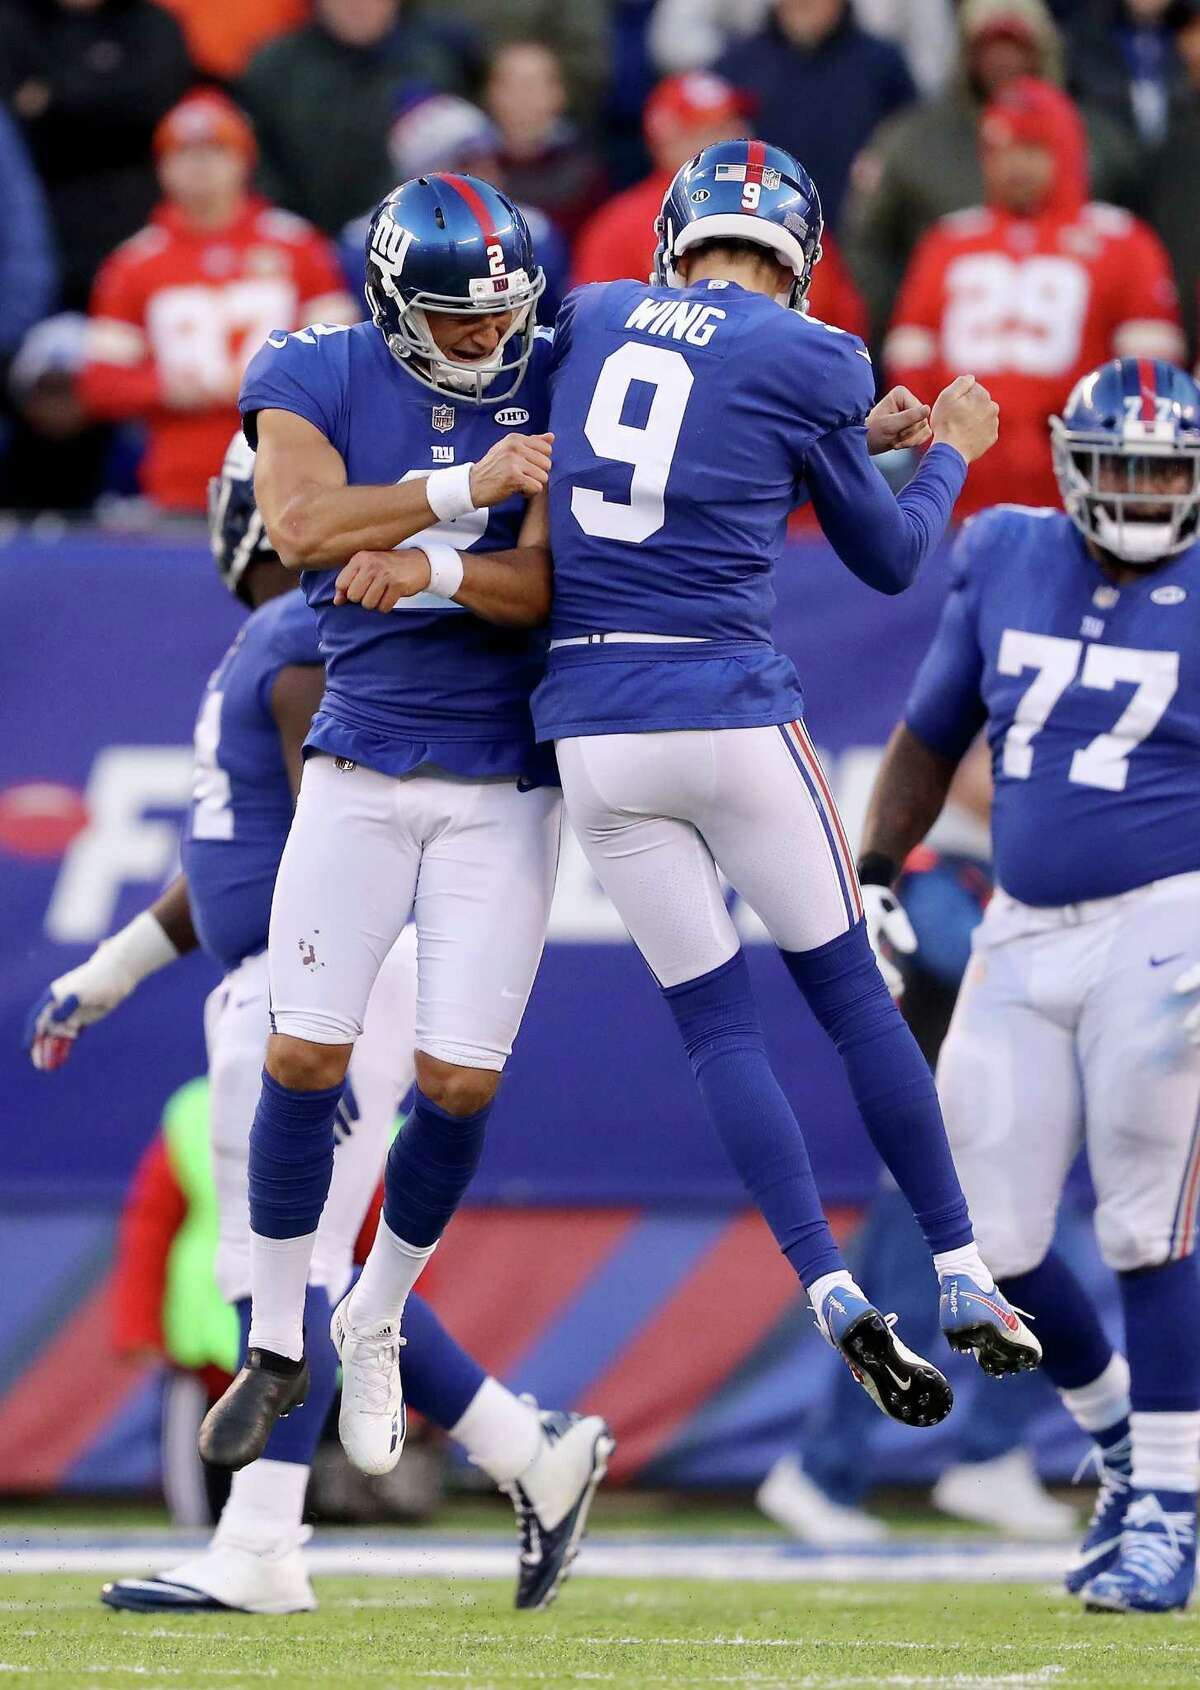 EAST RUTHERFORD, NJ - NOVEMBER 19: Aldrick Rosas #2 of the New York Giants celebrates his field goal with teammate Brad Wing #9 in the fourth quarter against the Kansas City Chiefs on November 19, 2017 at MetLife Stadium in East Rutherford, New Jersey. (Photo by Elsa/Getty Images) ORG XMIT: 700070748